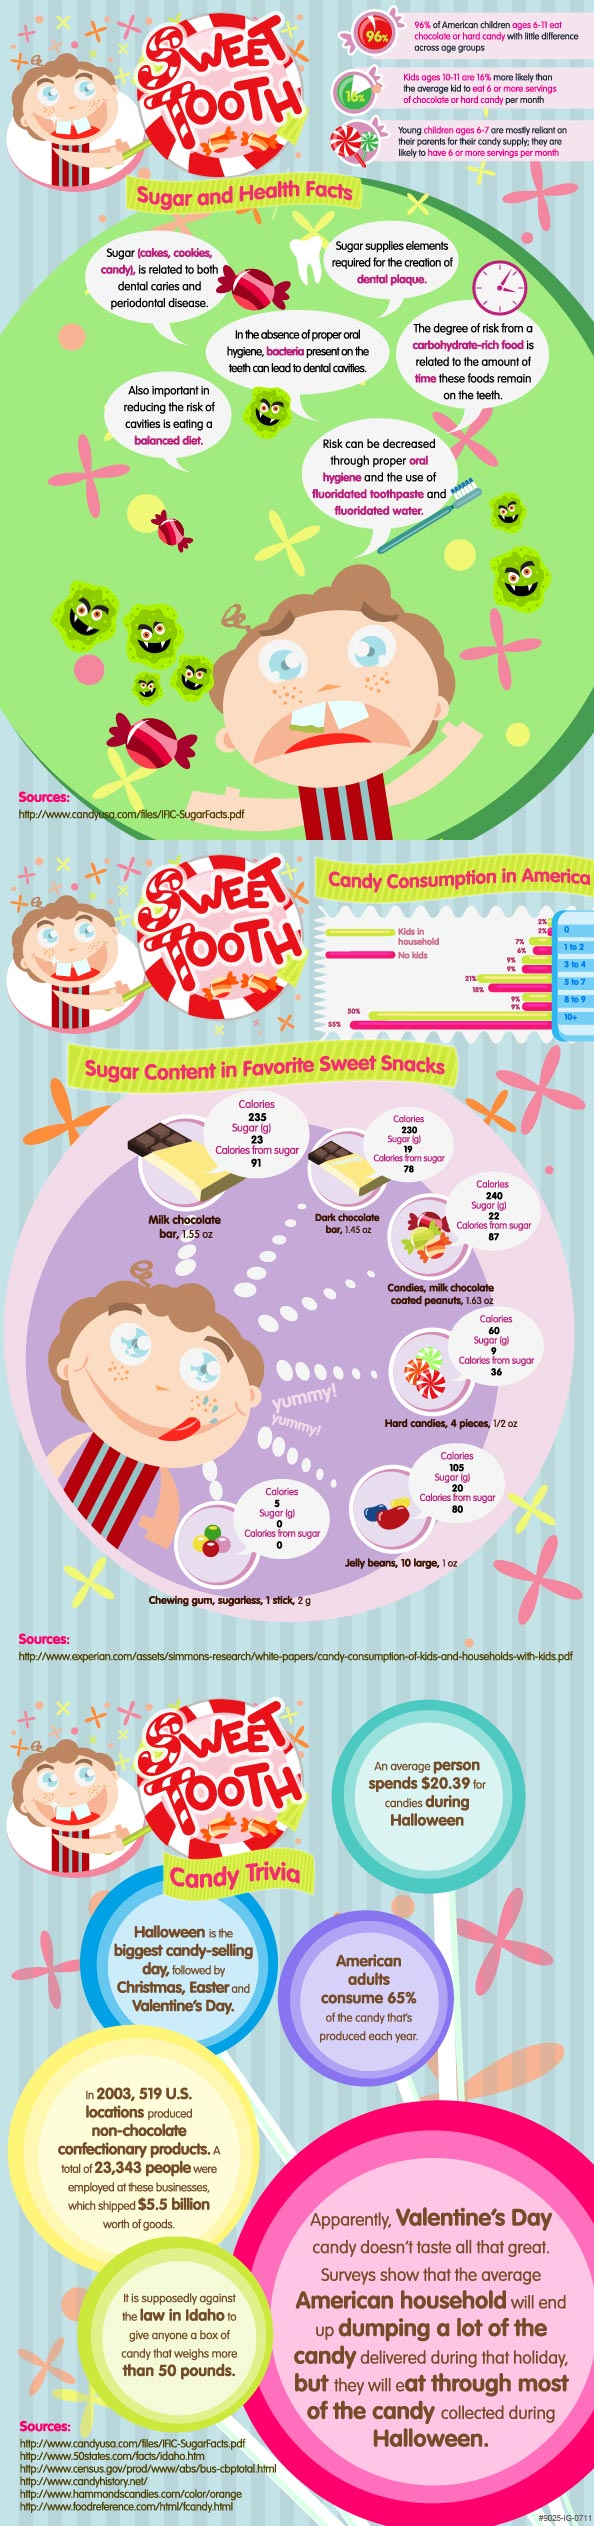 sweet tooth facts